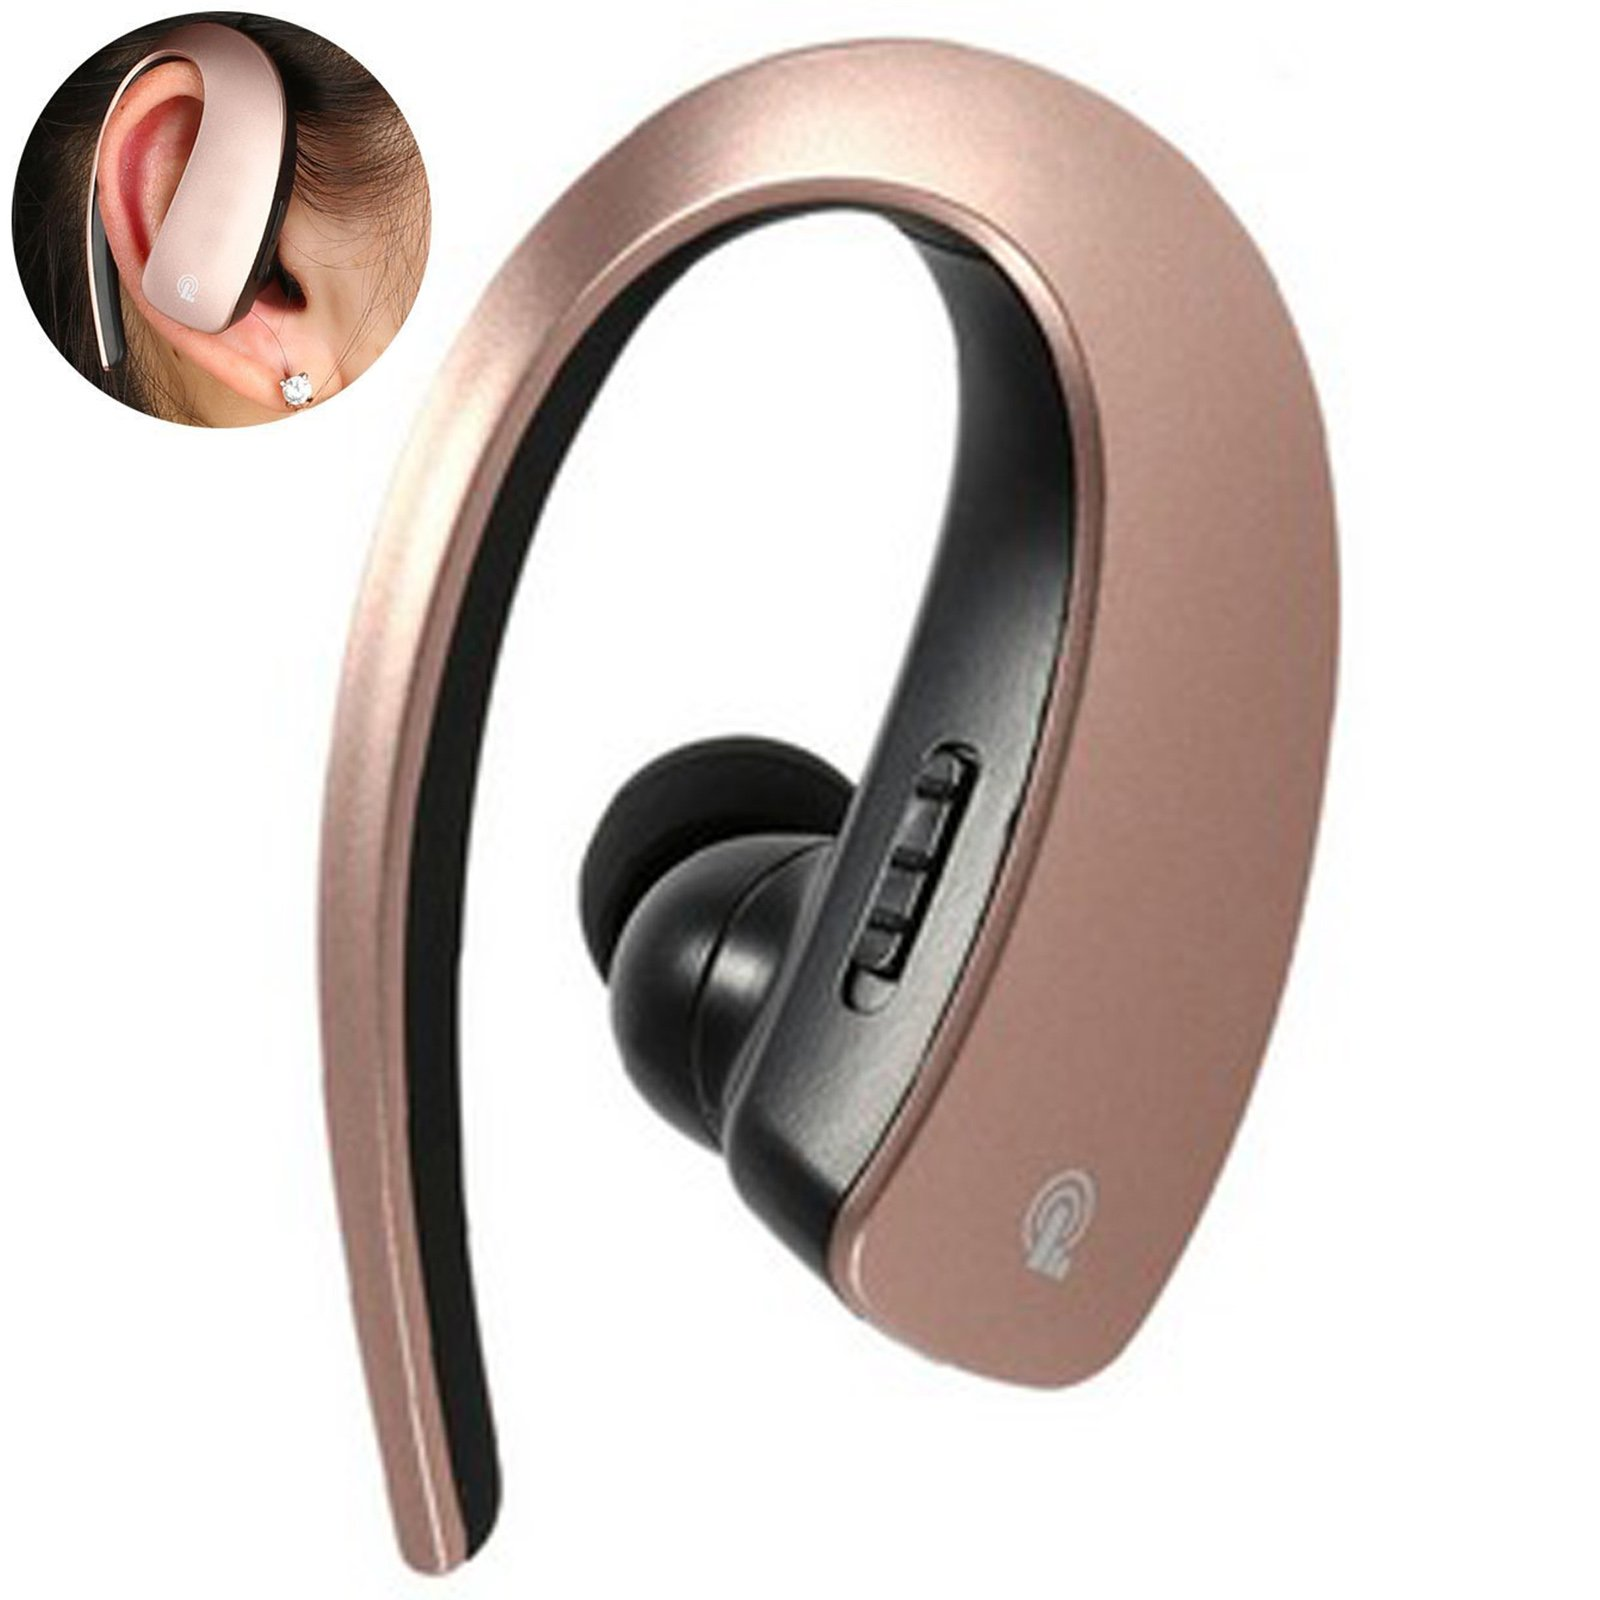 Bluetooth Headset Stereo Music Bluetooth Earphone Wireless Headphone Voice Command with Microphone for Android IOS iPhone 7 6 Plus 5S LG Samsung S8 Plus S7 S6 S5 Tablets and Other Bluetooth Devices